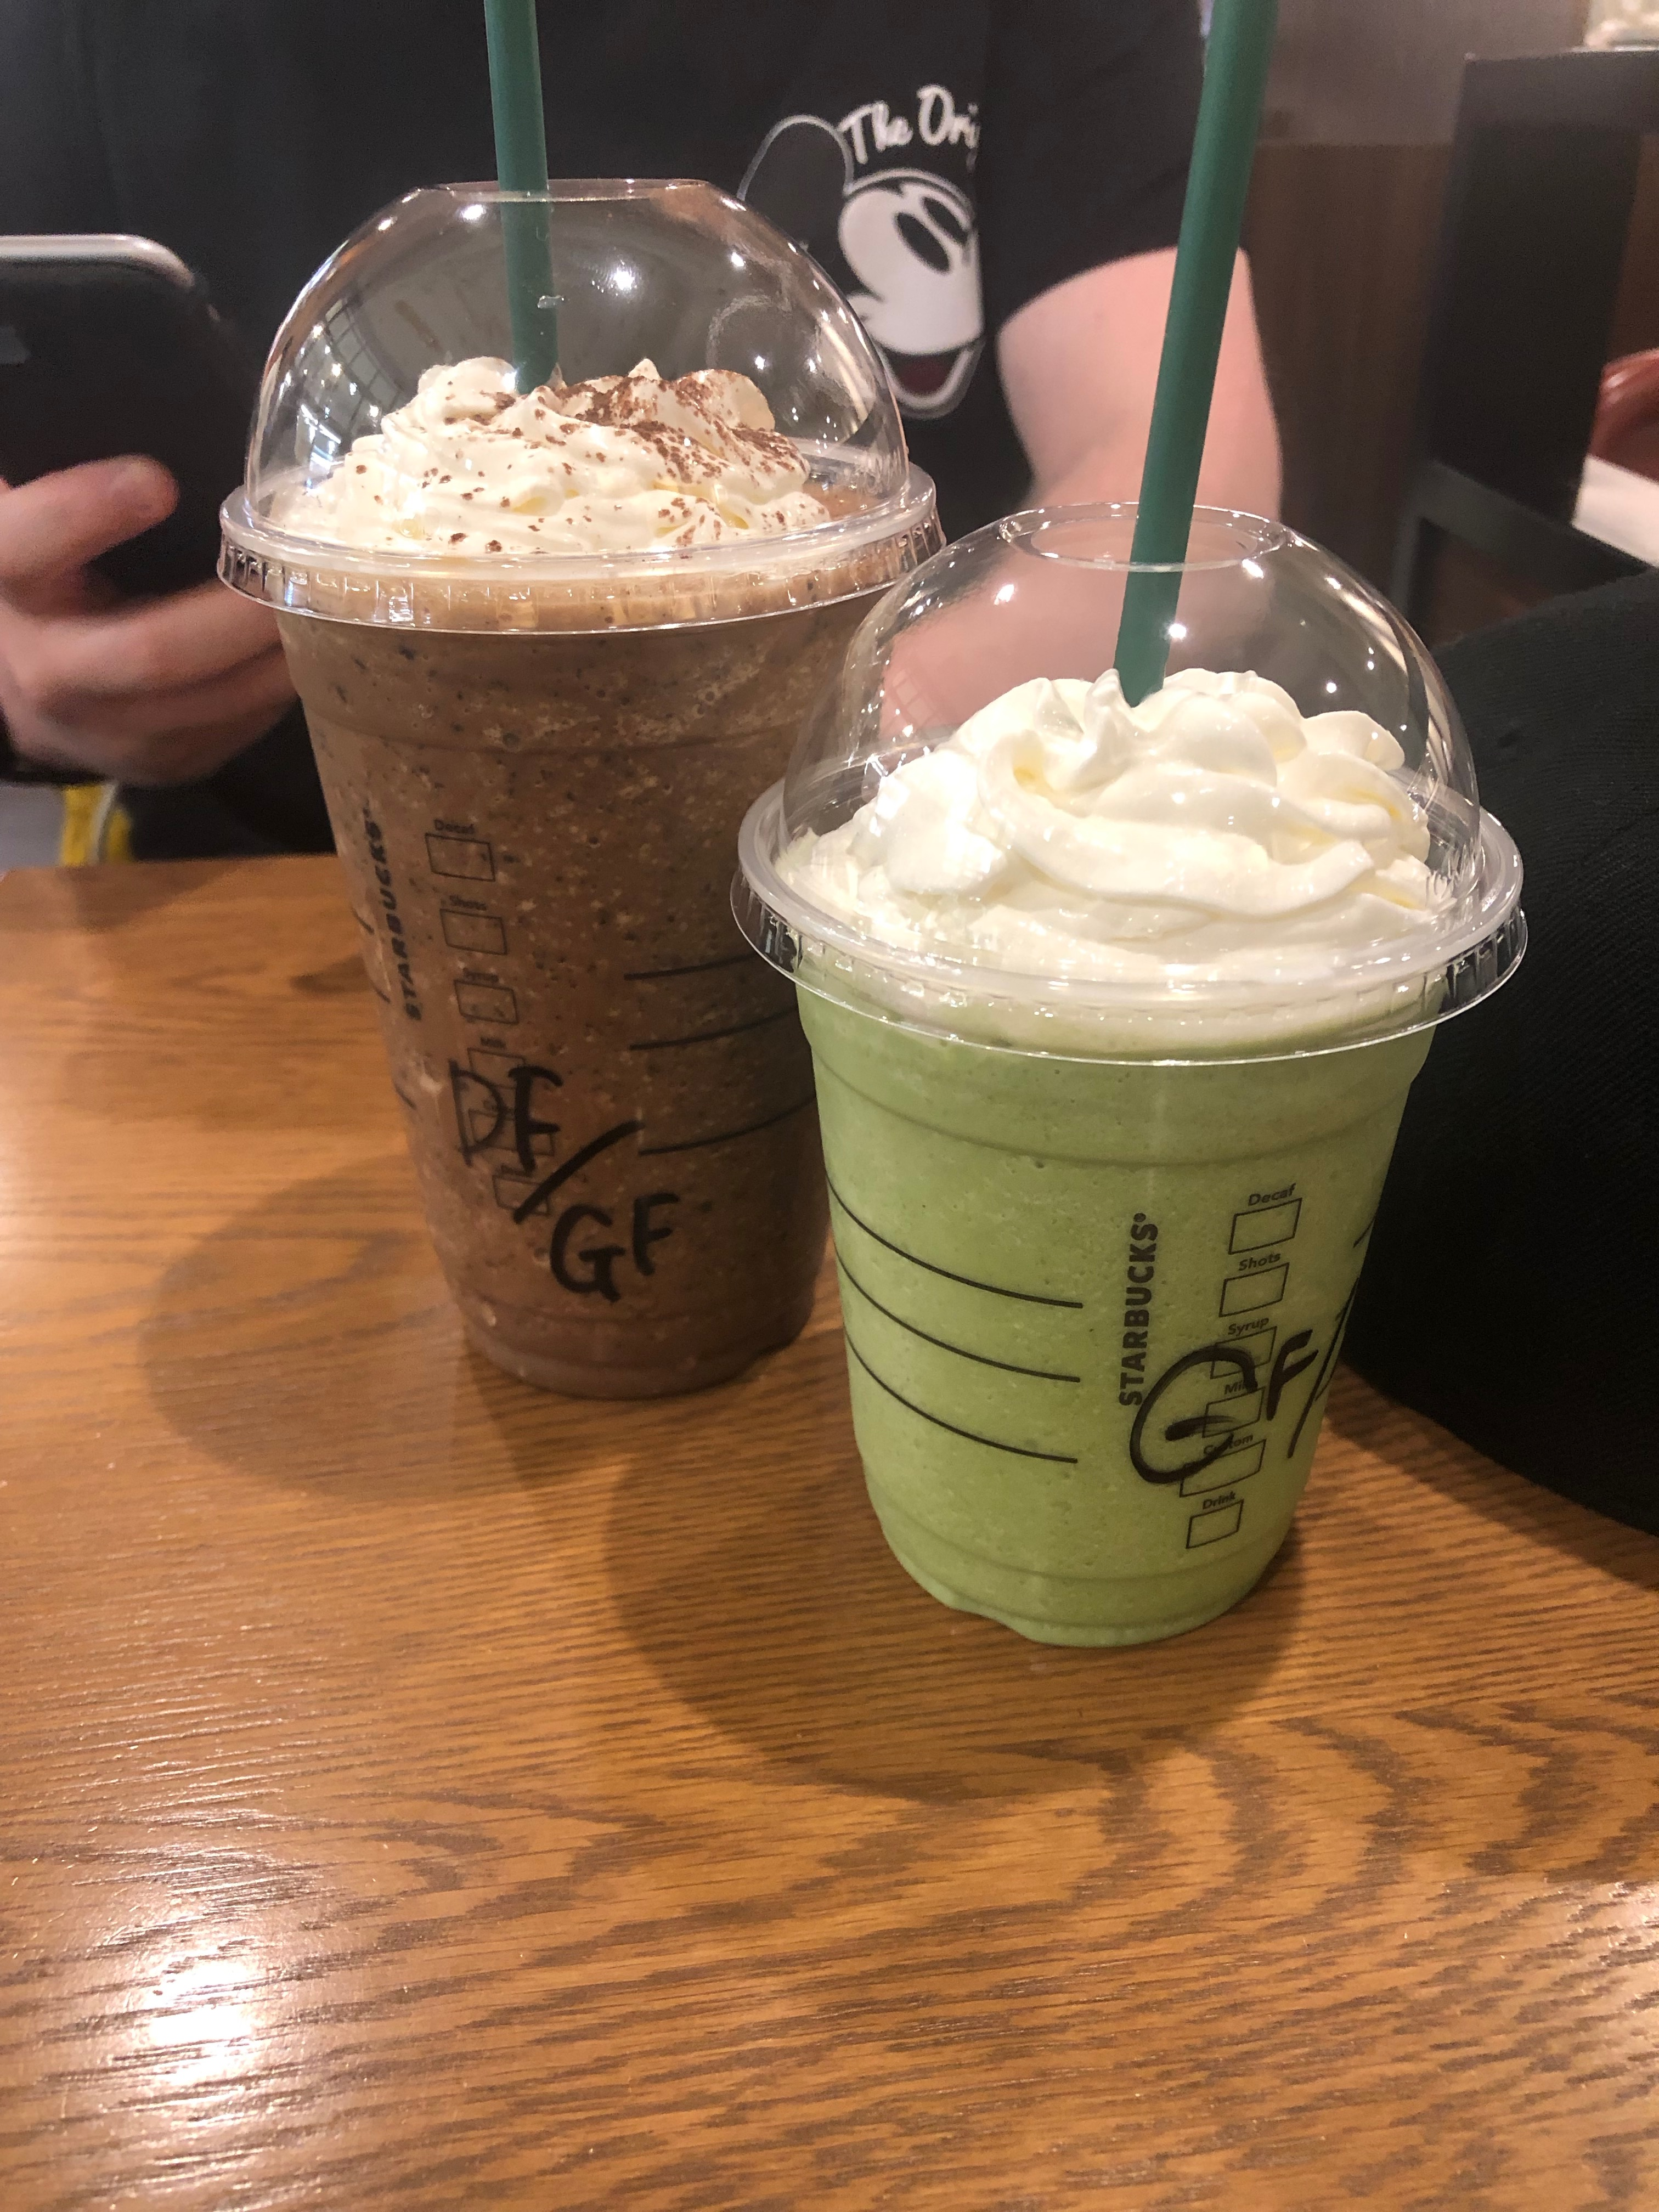 osaka food - starbucks